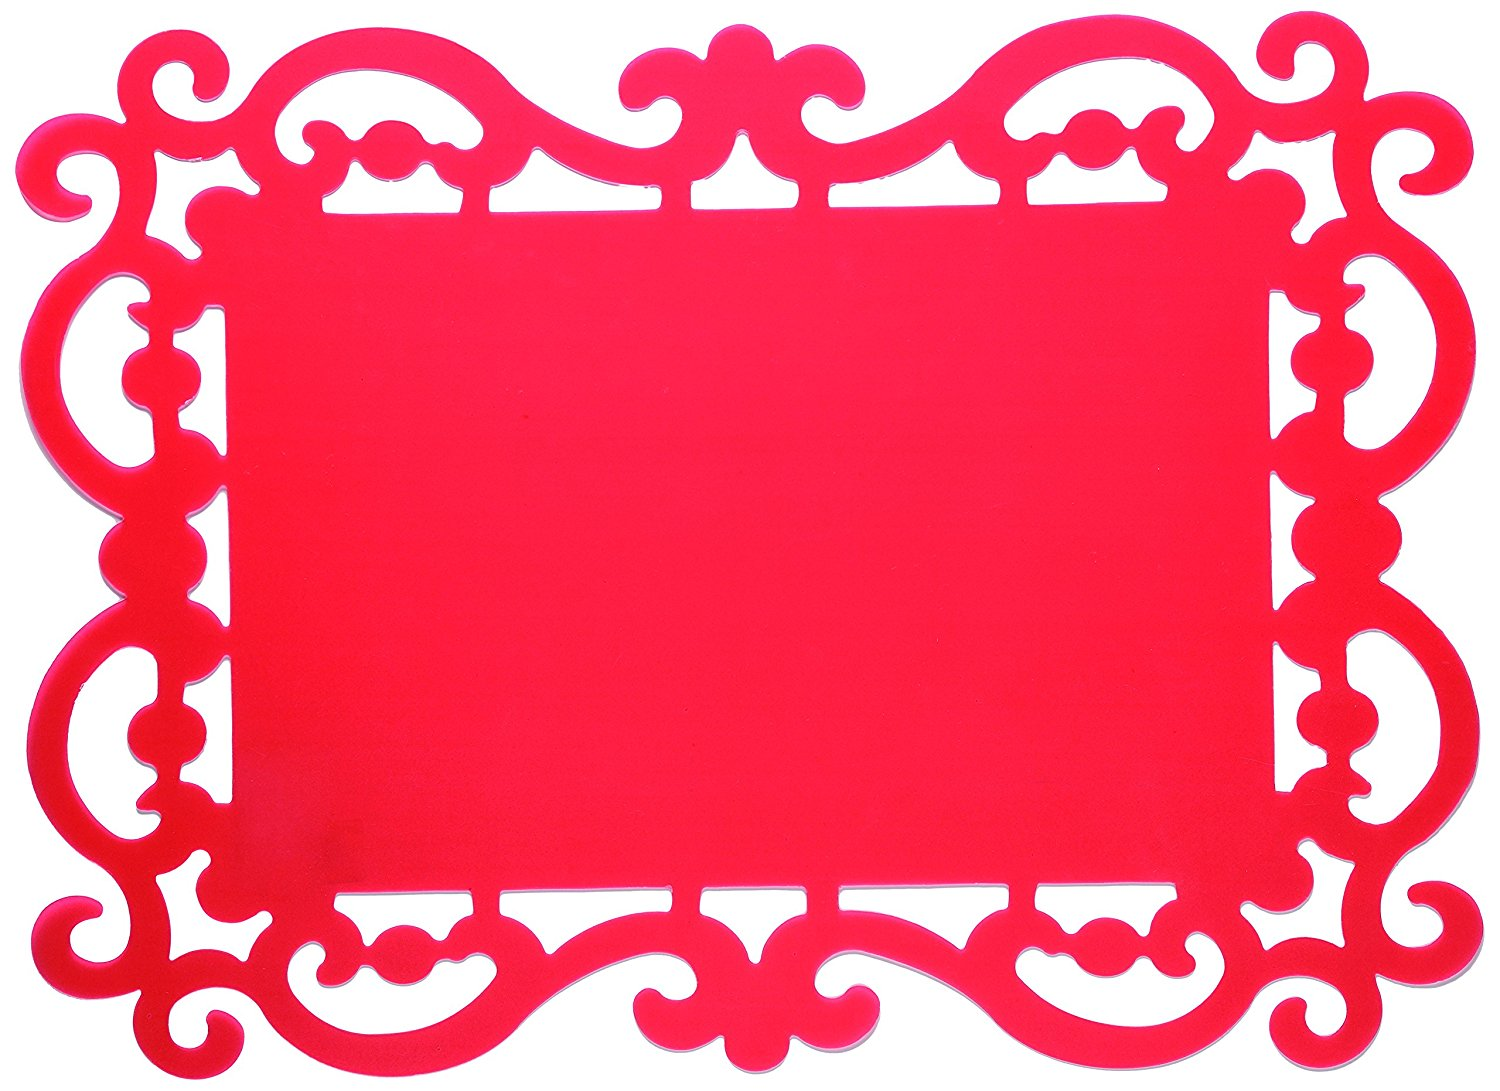 1500x1091 Bitossi Home Bef 31 Set 12 Placemats, 44x32cm, Red Amazon.co.uk